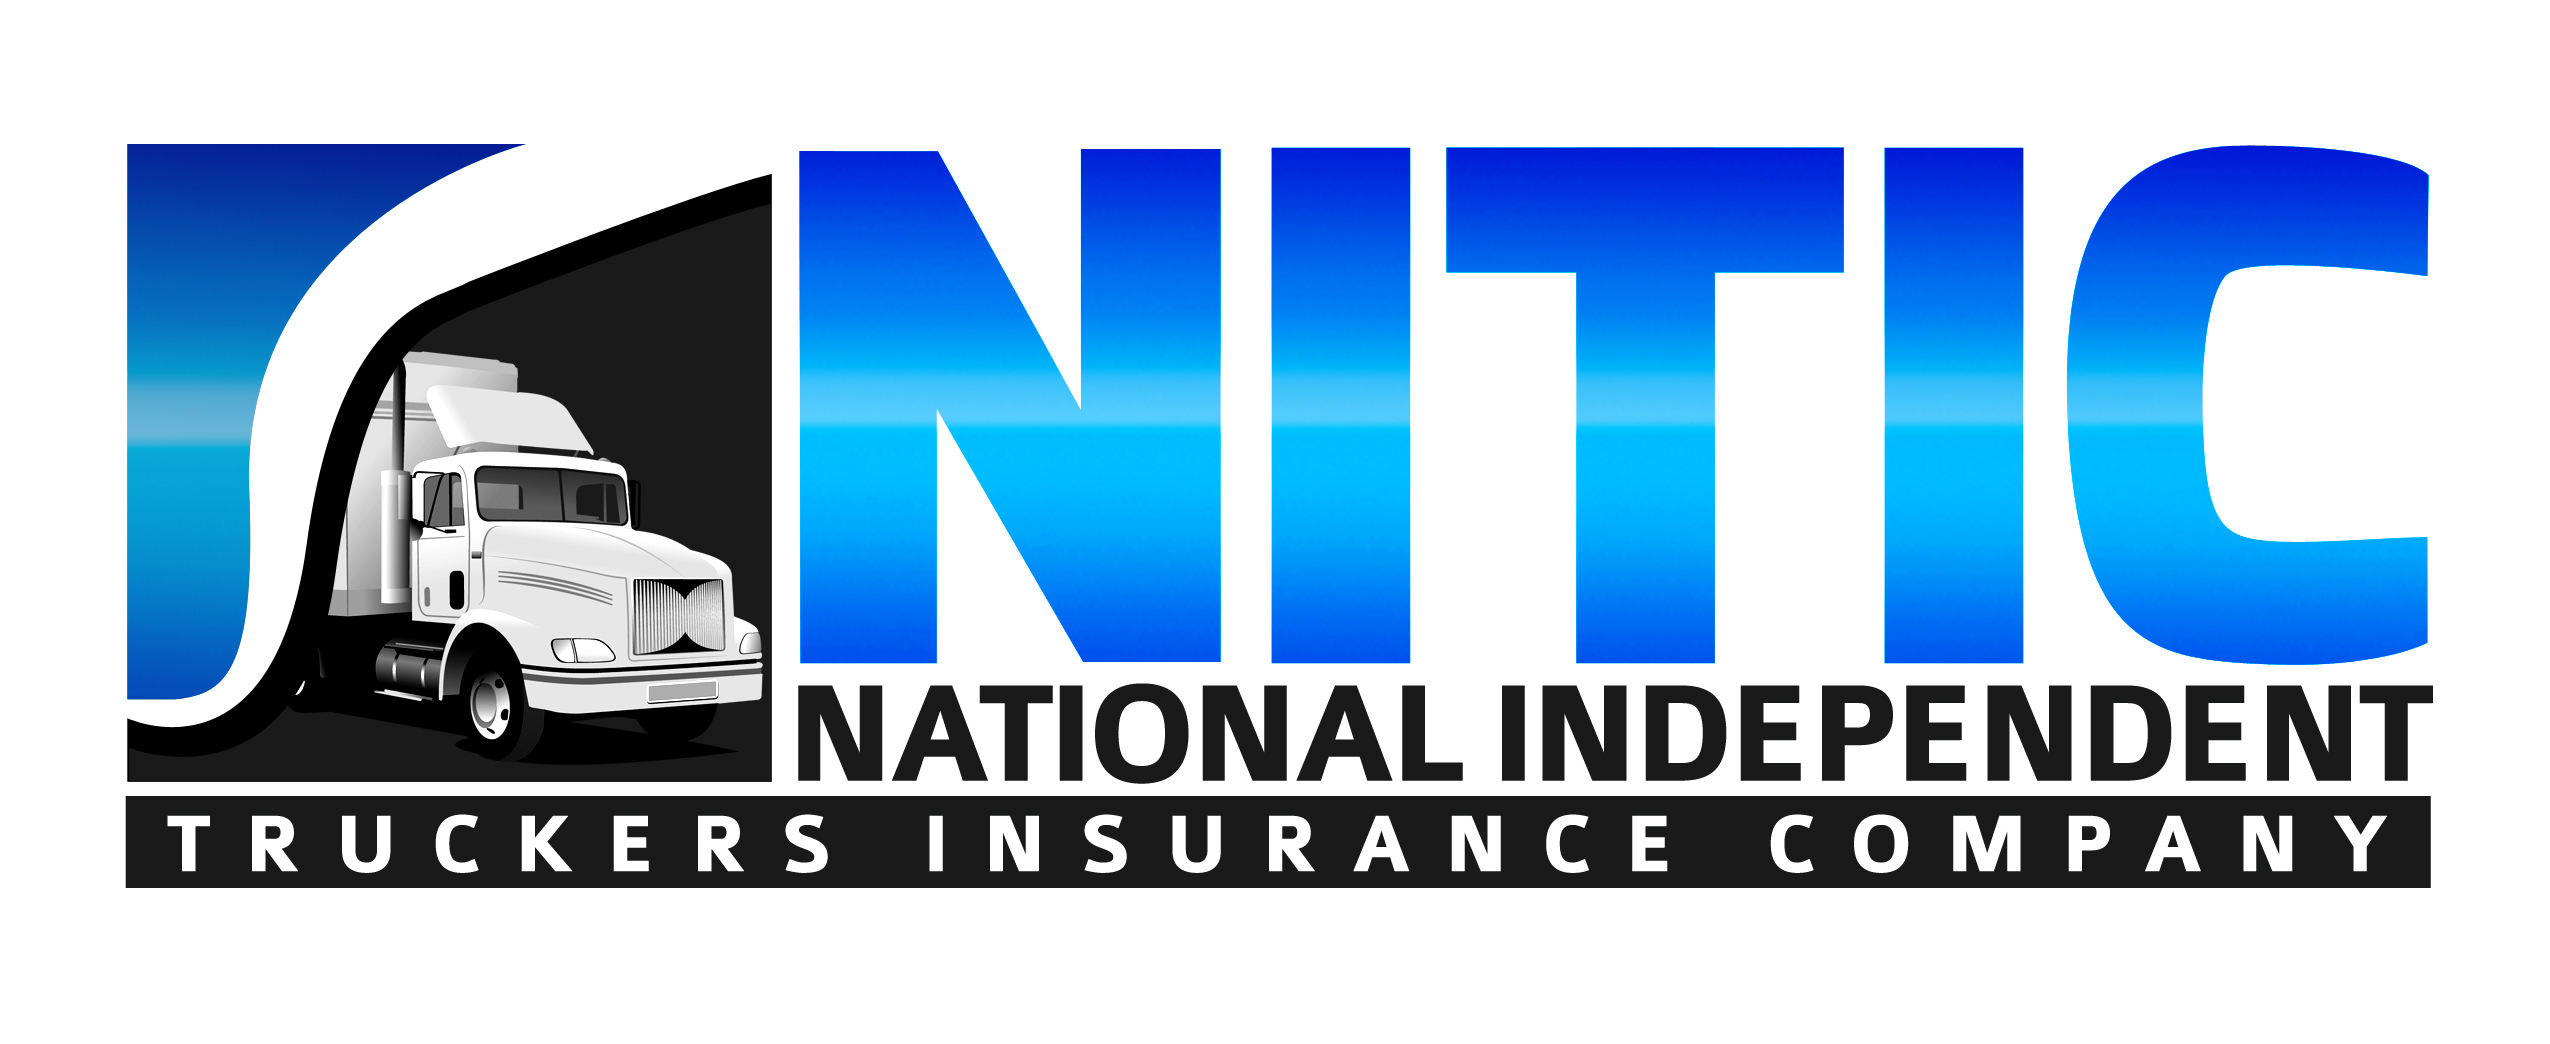 National independent truckers insurance